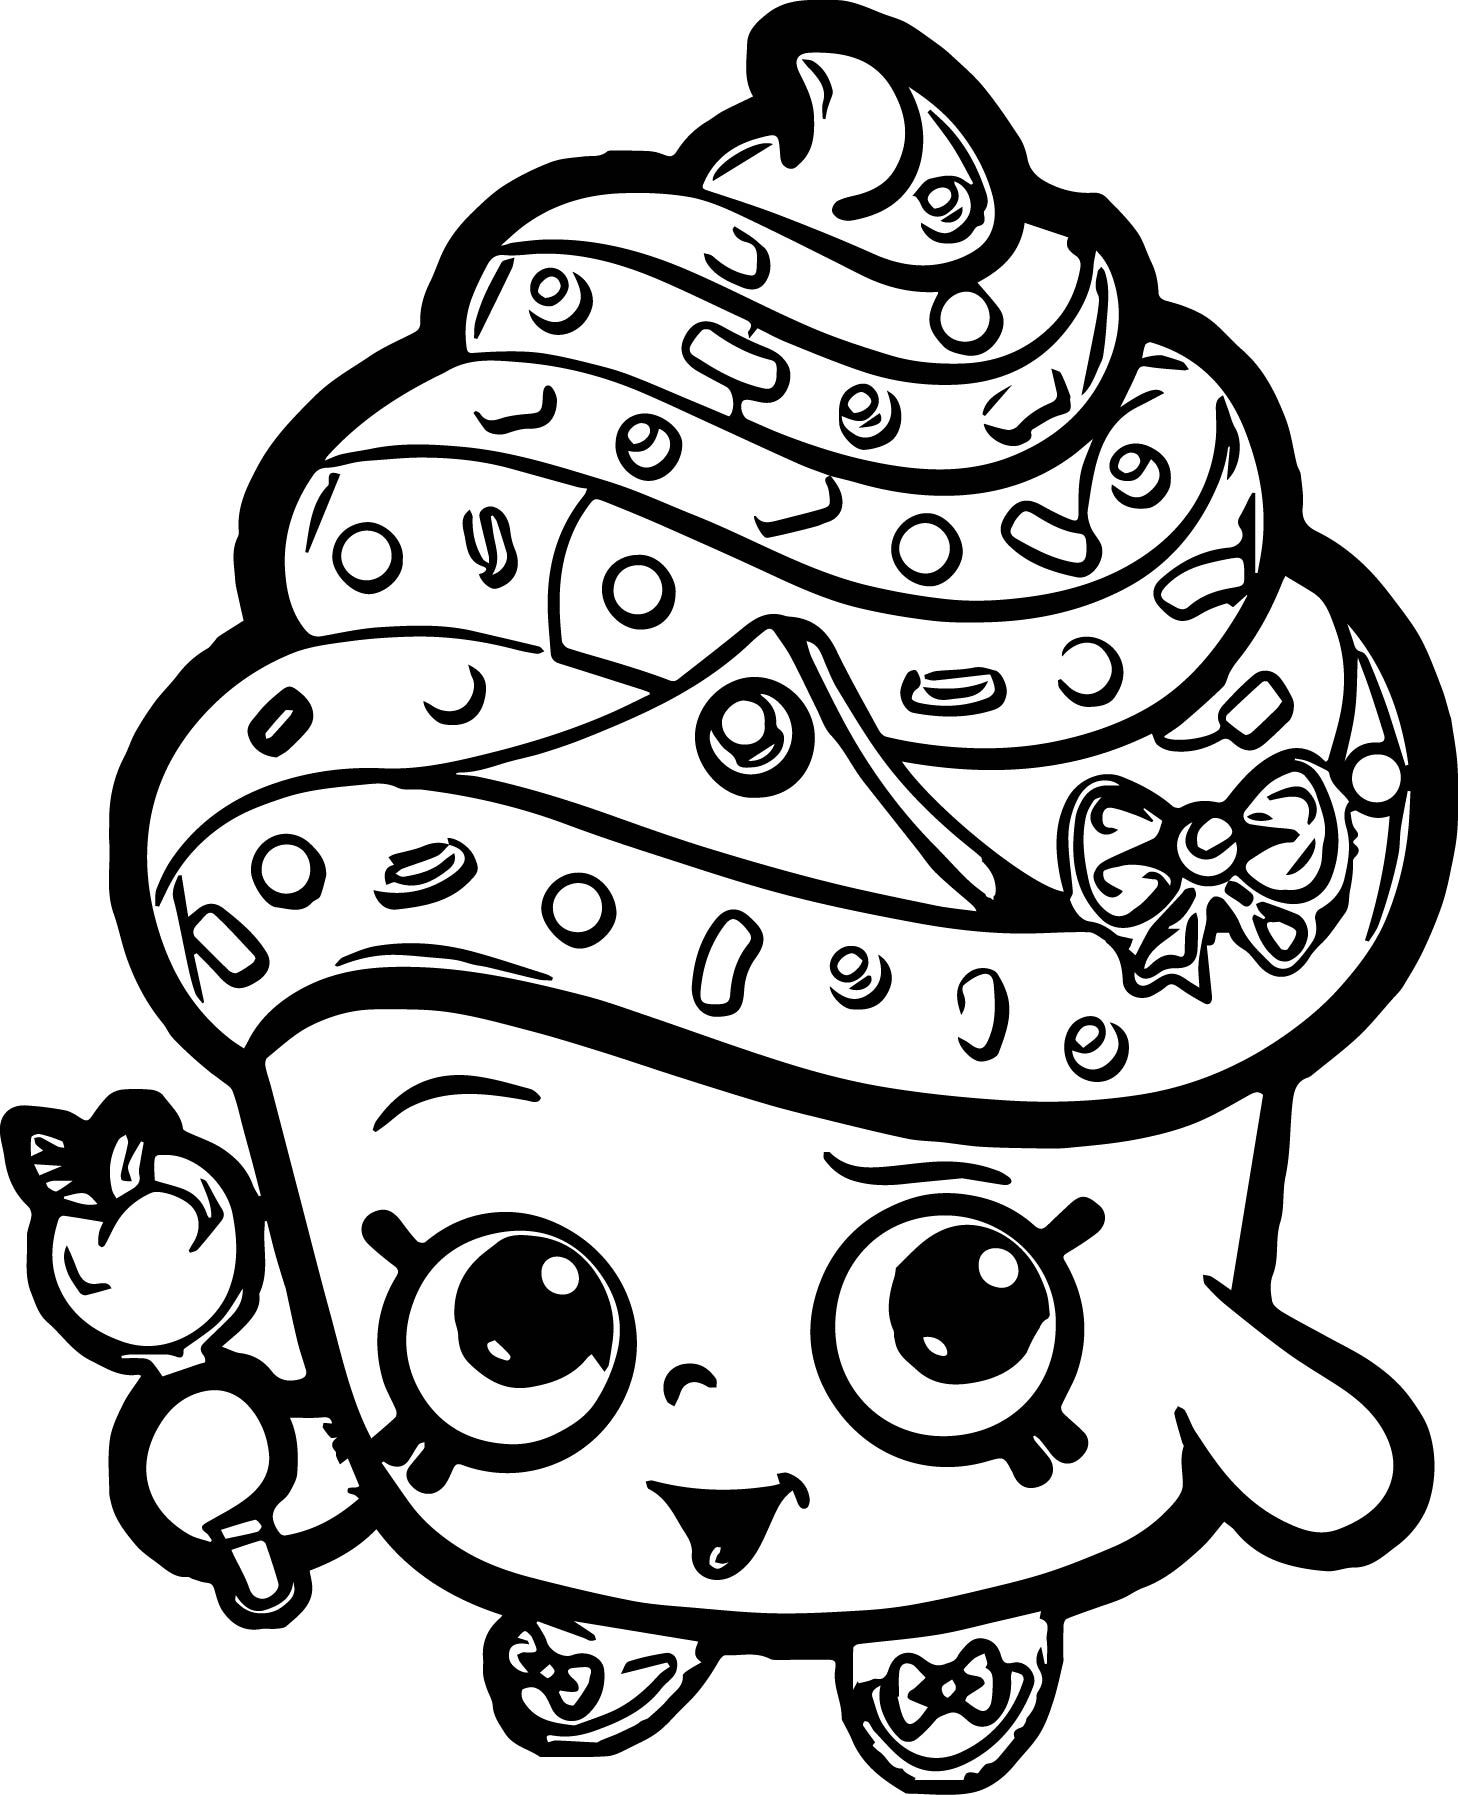 shopkins cupcake coloring pages cupcake queen shopkins coloring pages cupcake pages coloring shopkins